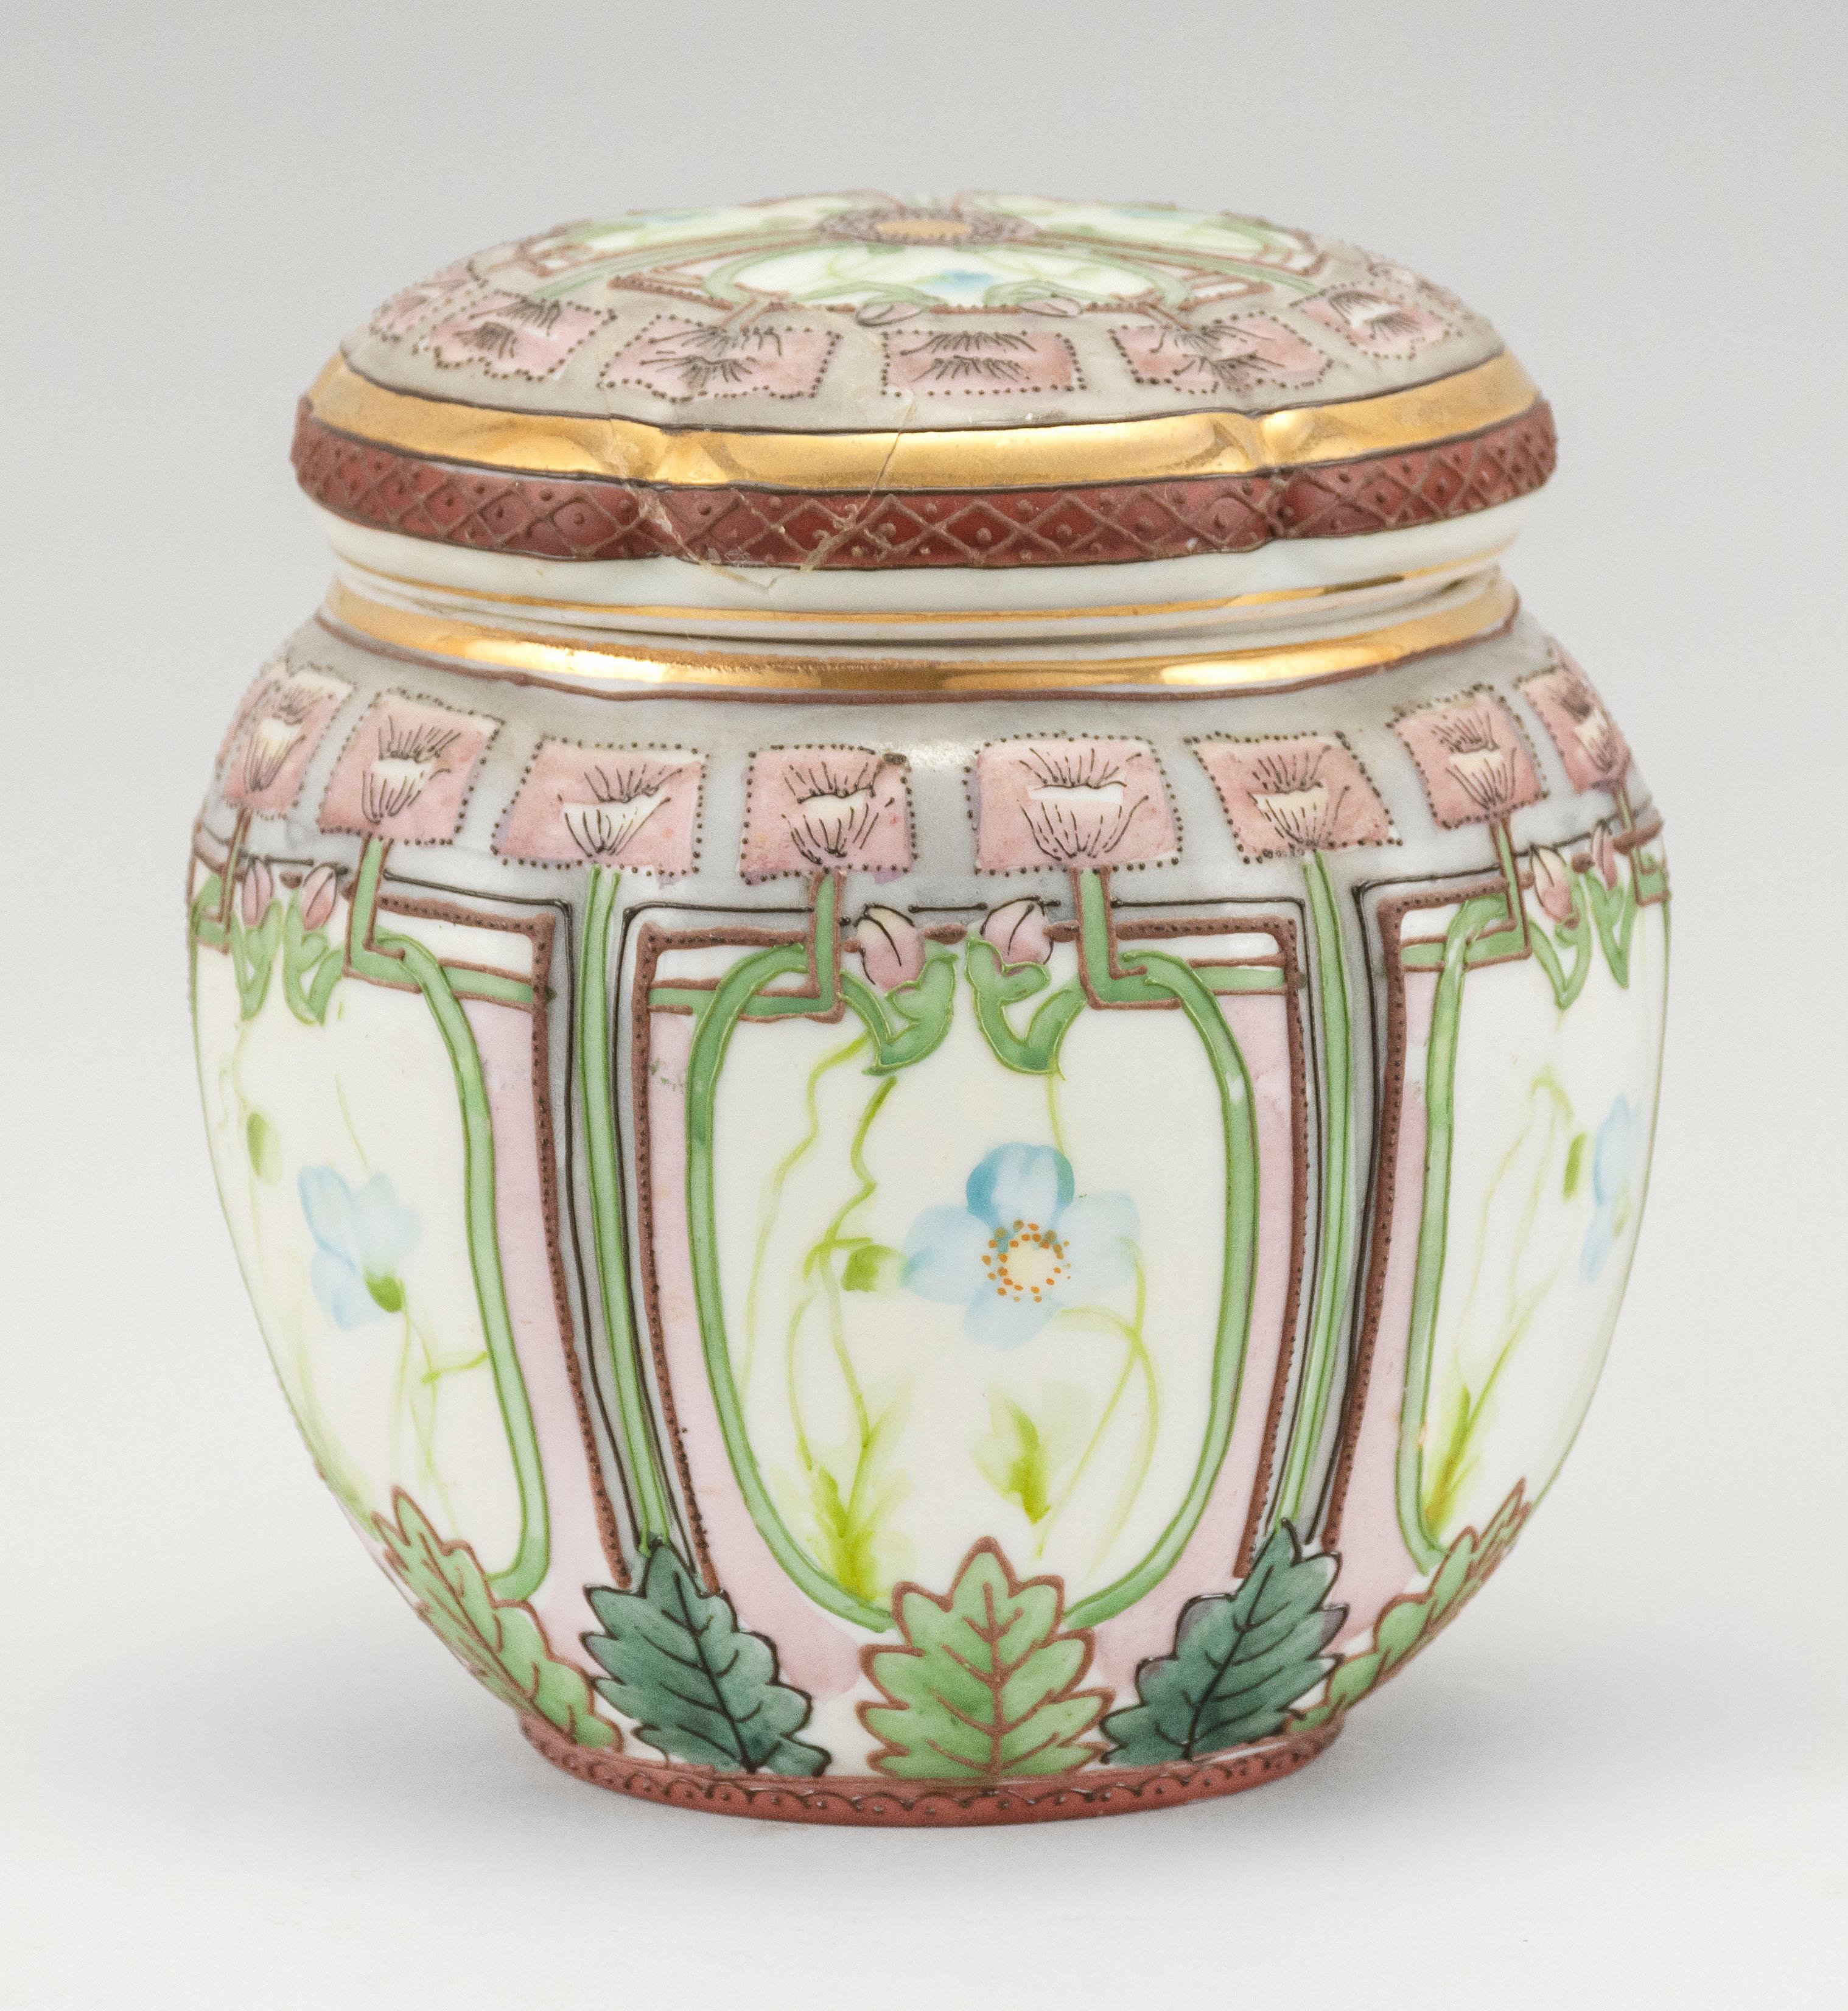 """NIPPON PORCELAIN HUMIDOR In ovoid form, with floral designs. Van Patten #52 mark on base. Height 5.5""""."""